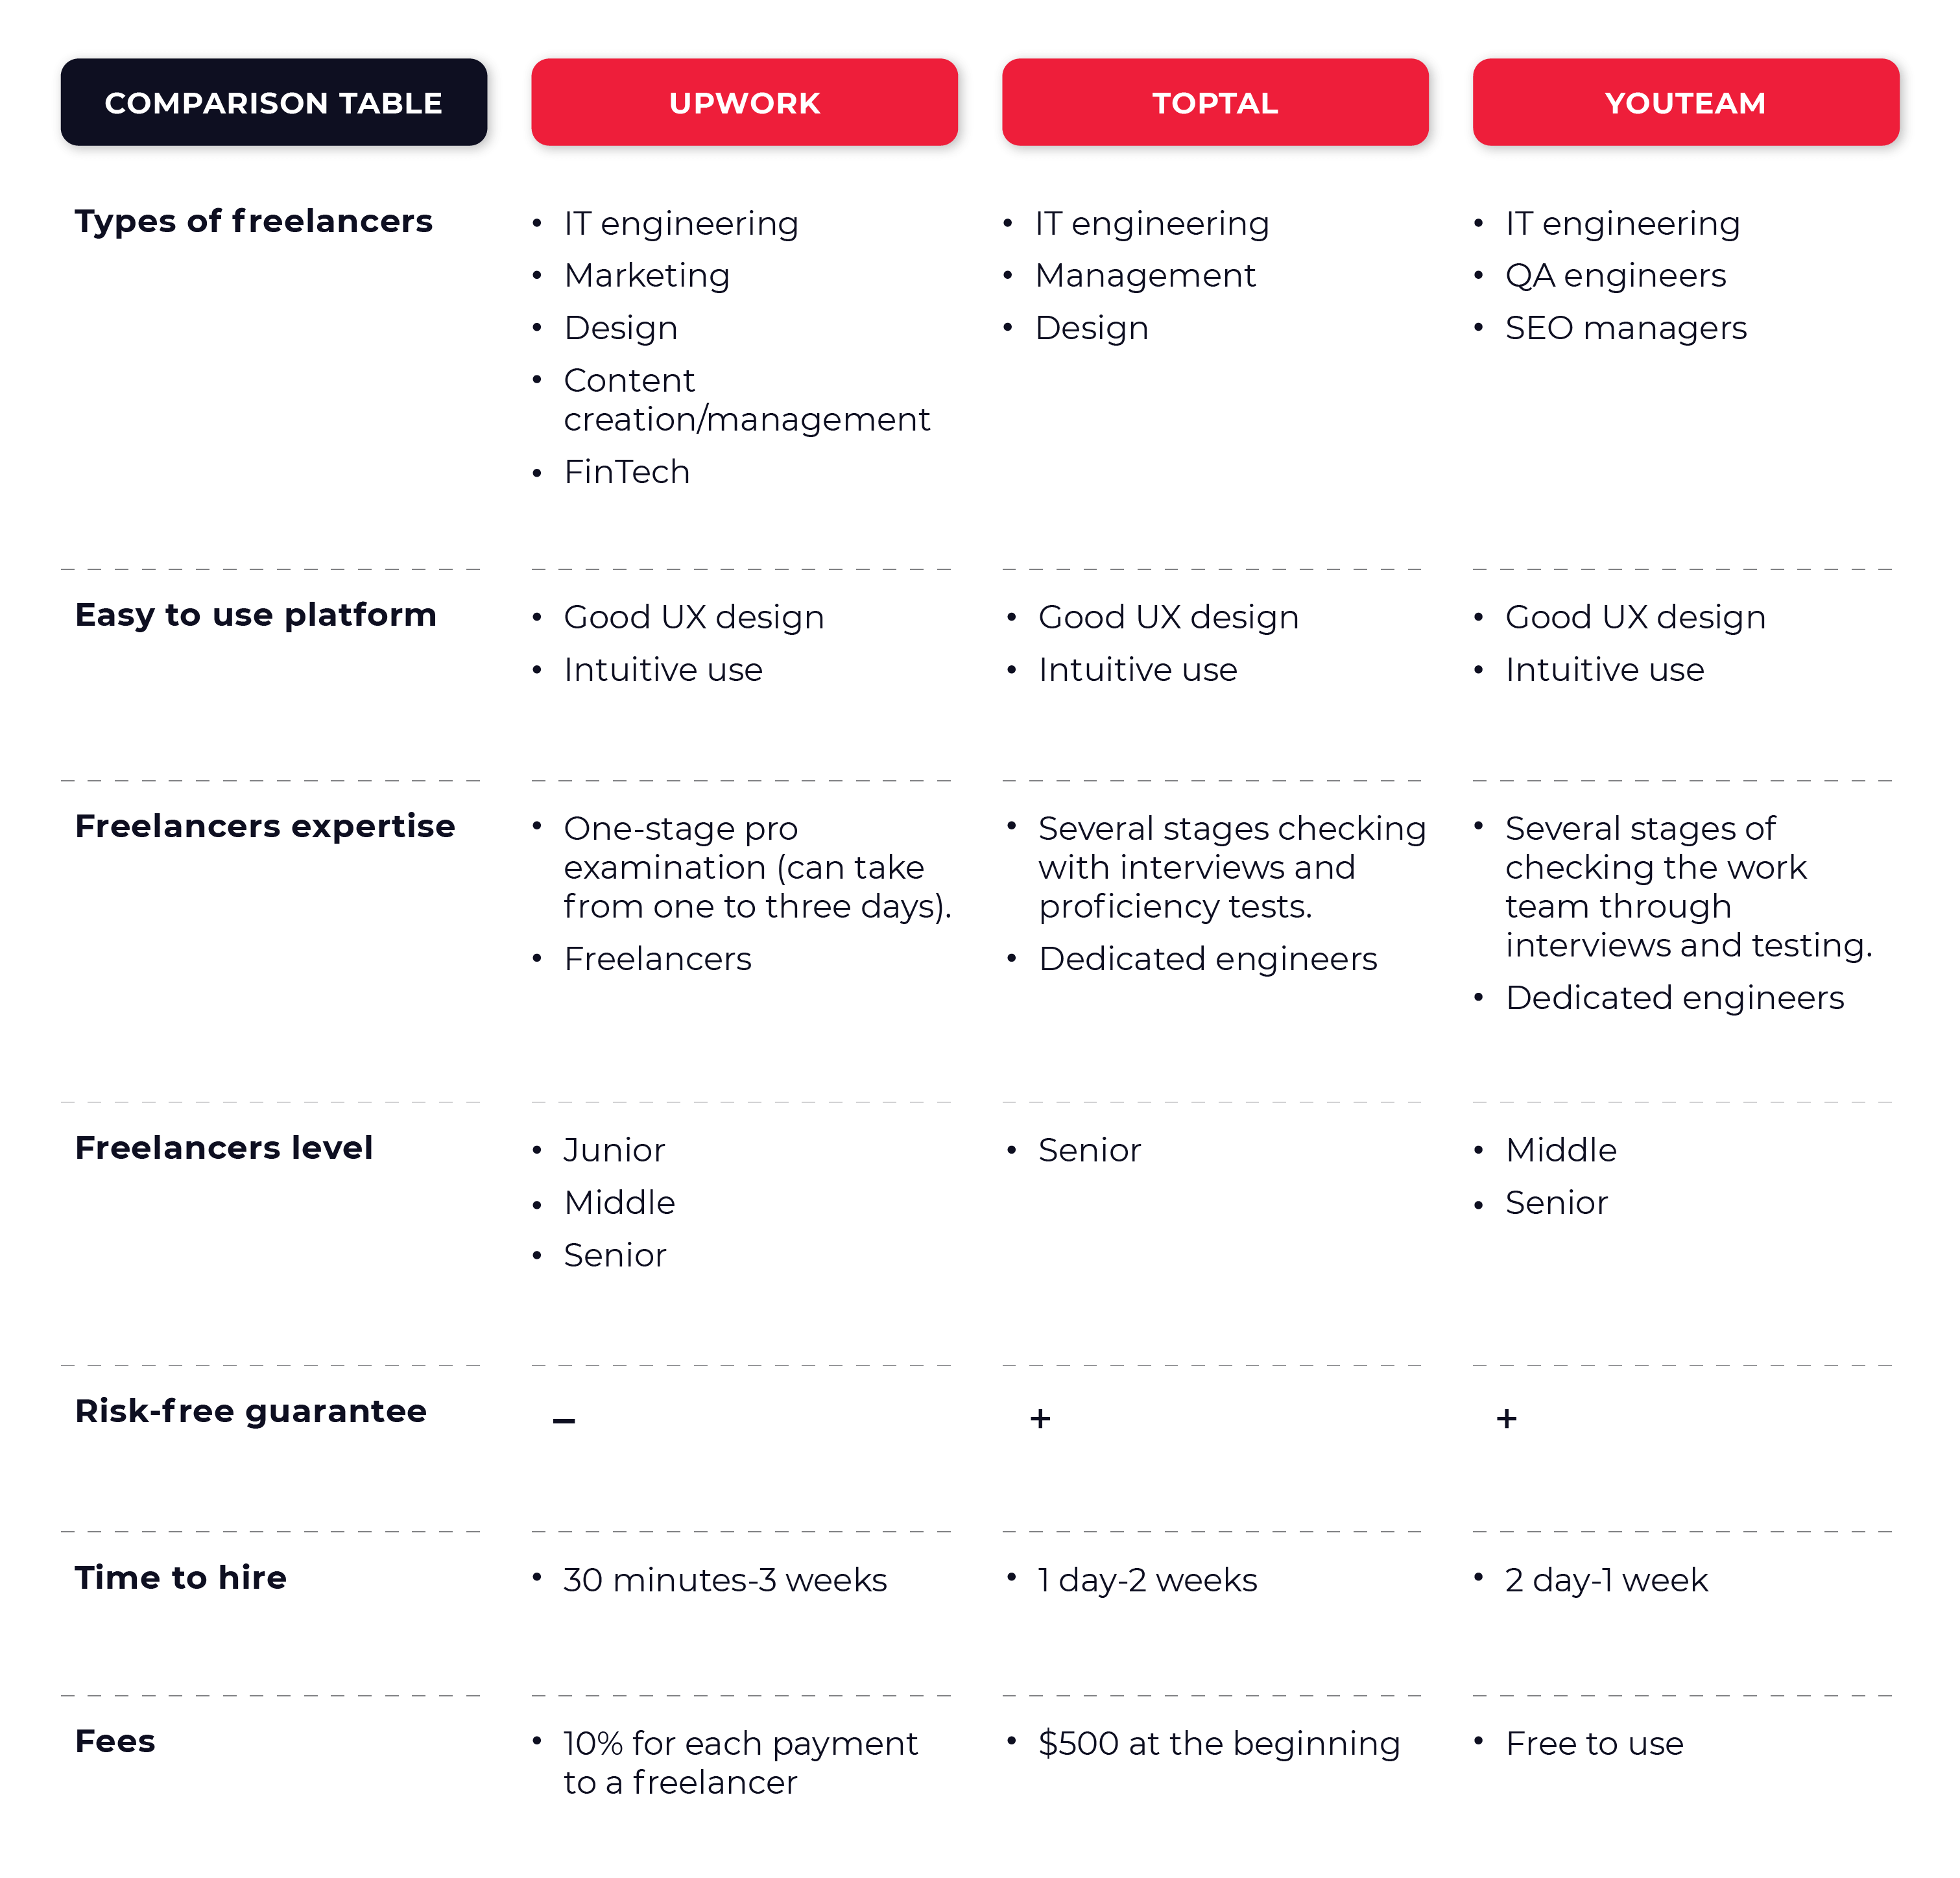 Comparative table of Toptal, Upwork, and YouTeam technical features